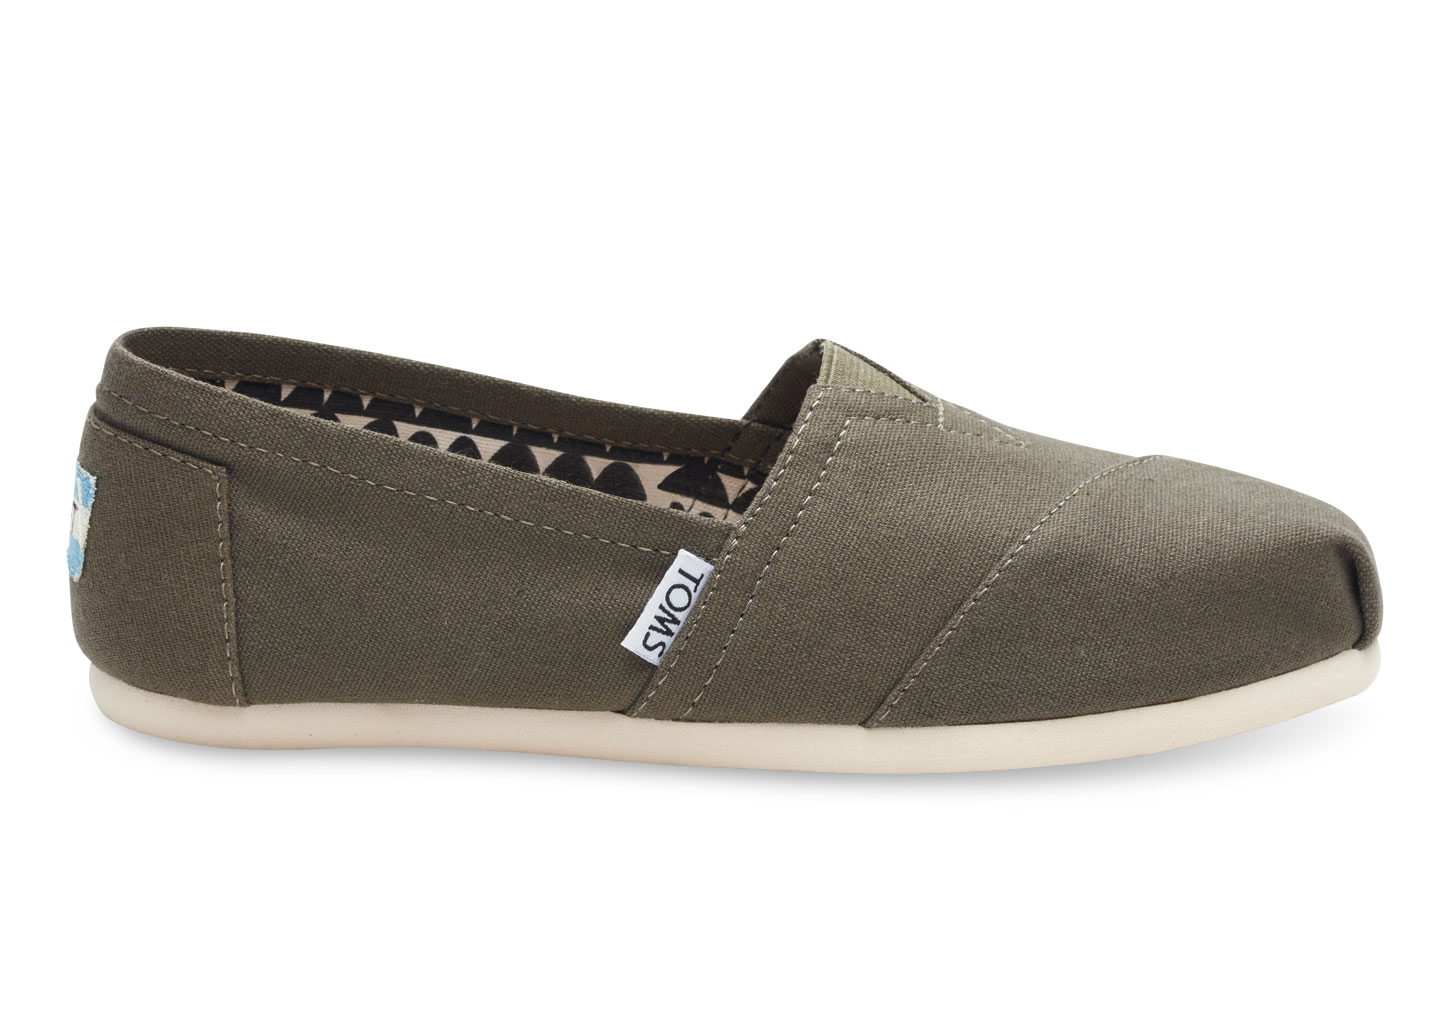 Toms Mens Tarmac Olive Suede Shoes